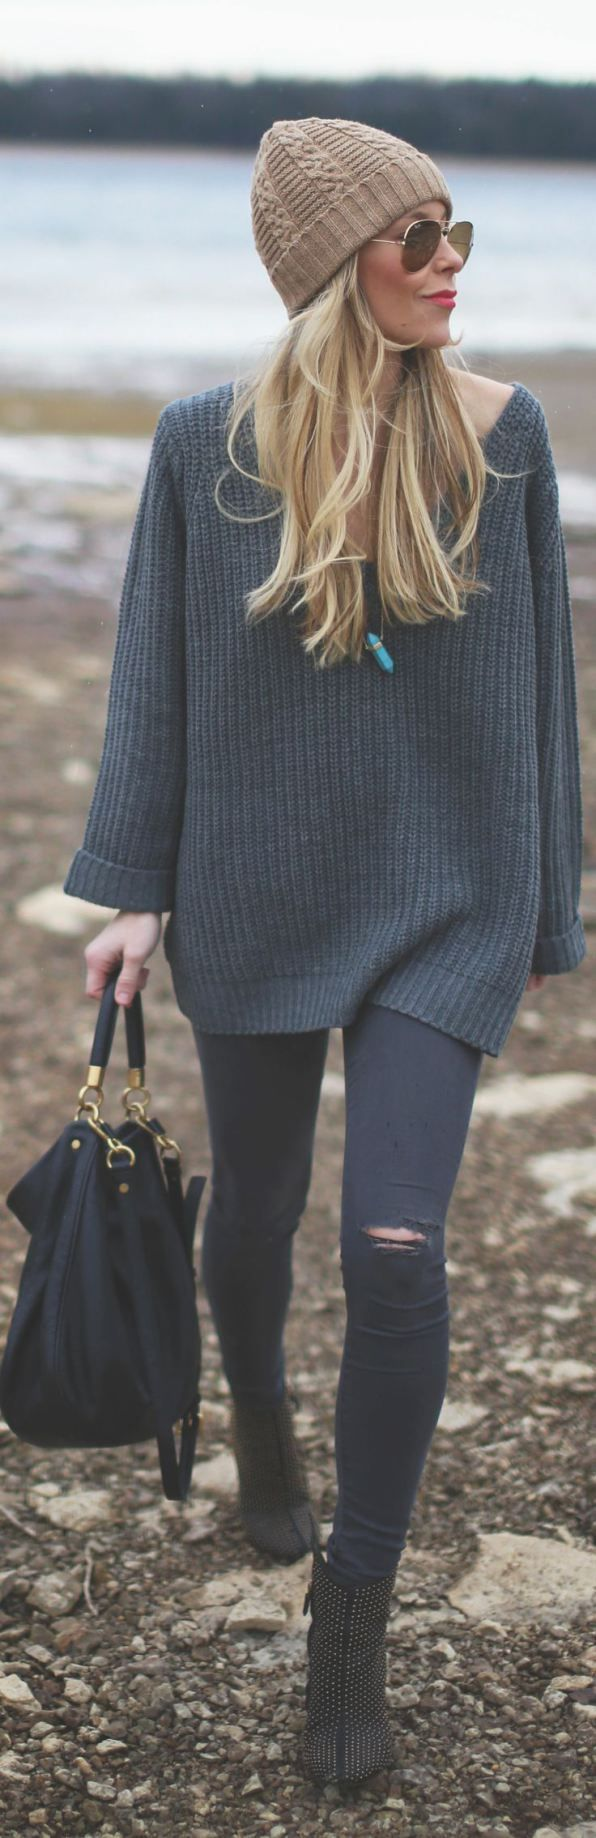 Oversized Sweater and Ripped Leggings